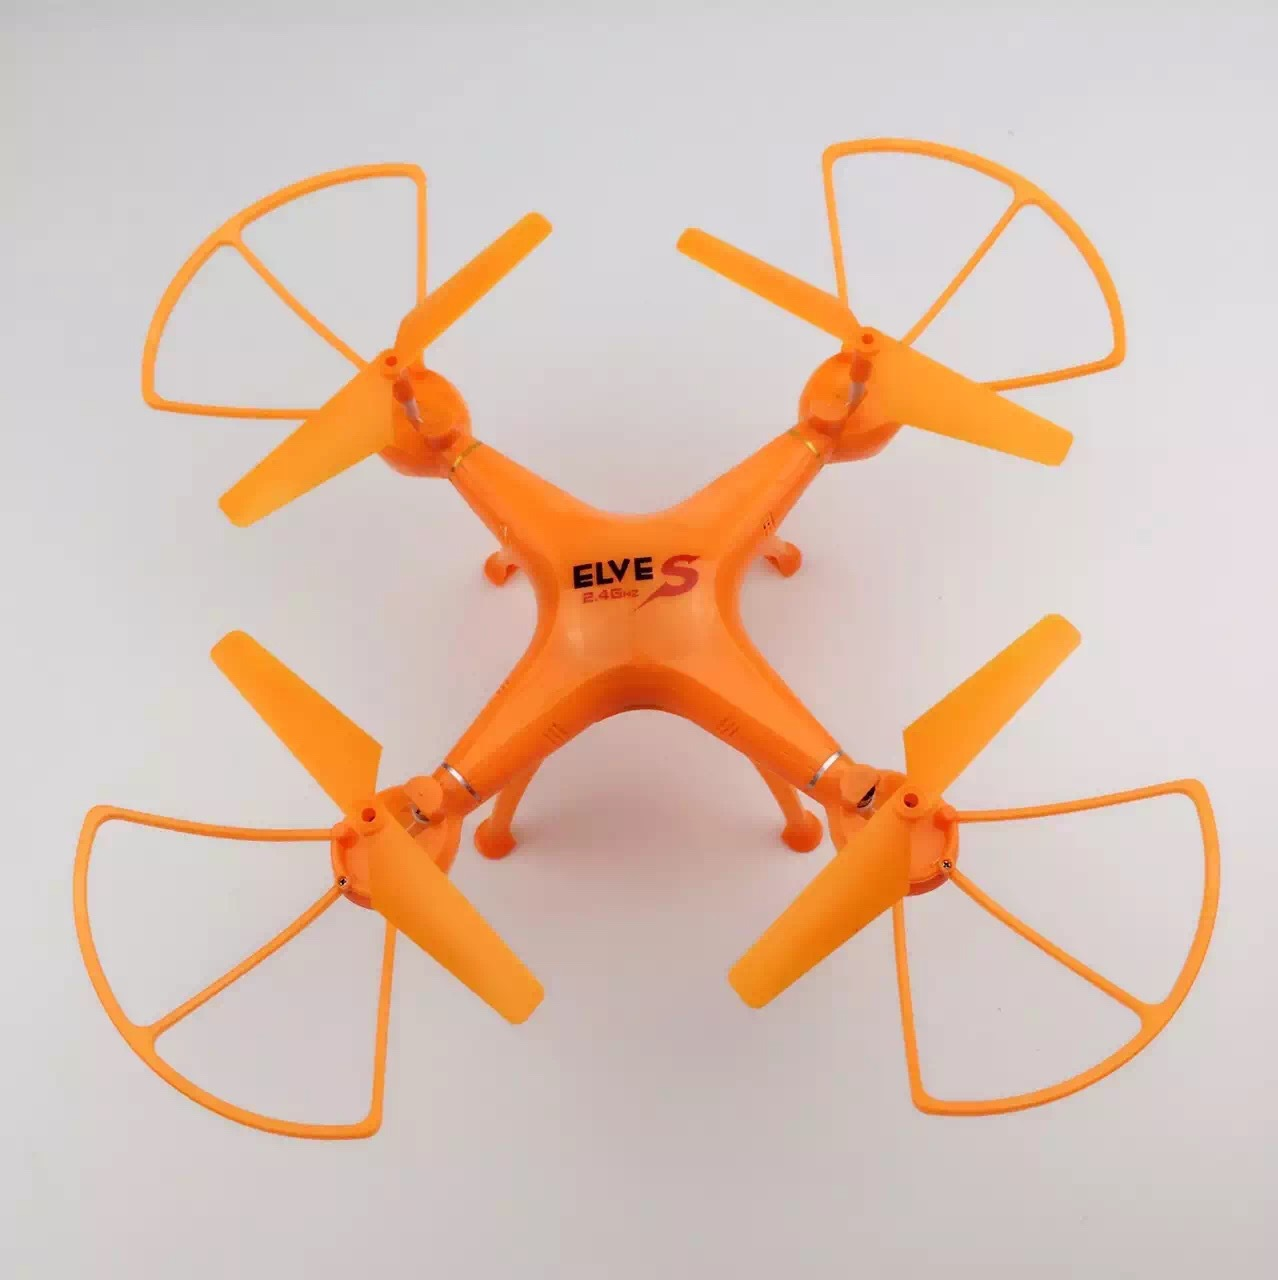 Large Size Quadcopter Unmanned Aerial Vehicle Aerial Photography Aviation Model Plastic Toys Rechargeable Remote Control Helicop